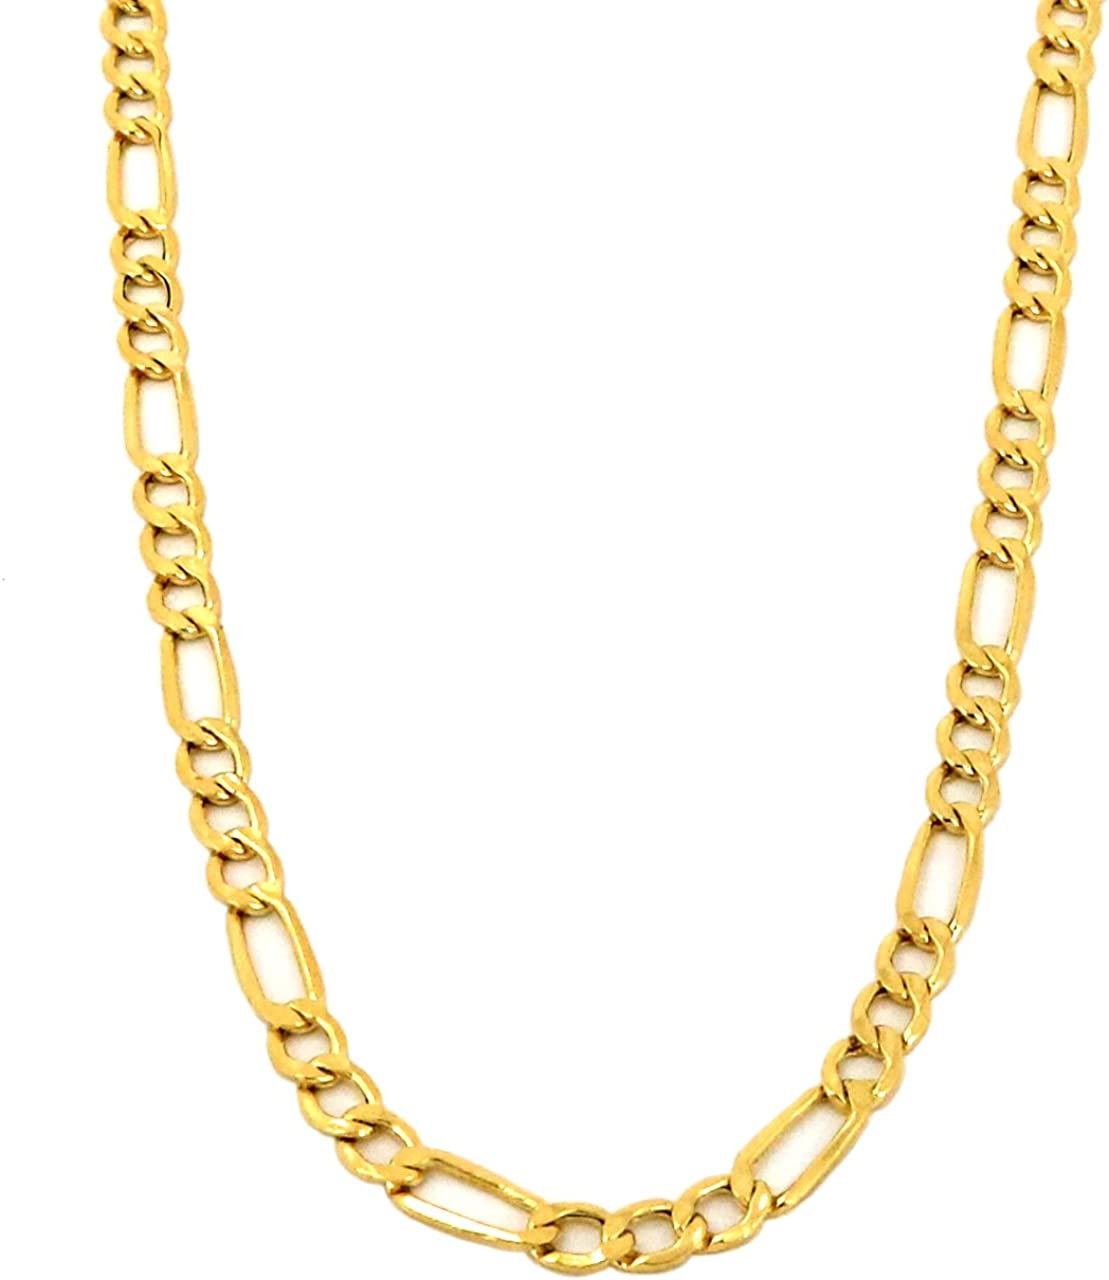 Yellow Gold Hollow Figaro Chain Real 10K Necklace 16